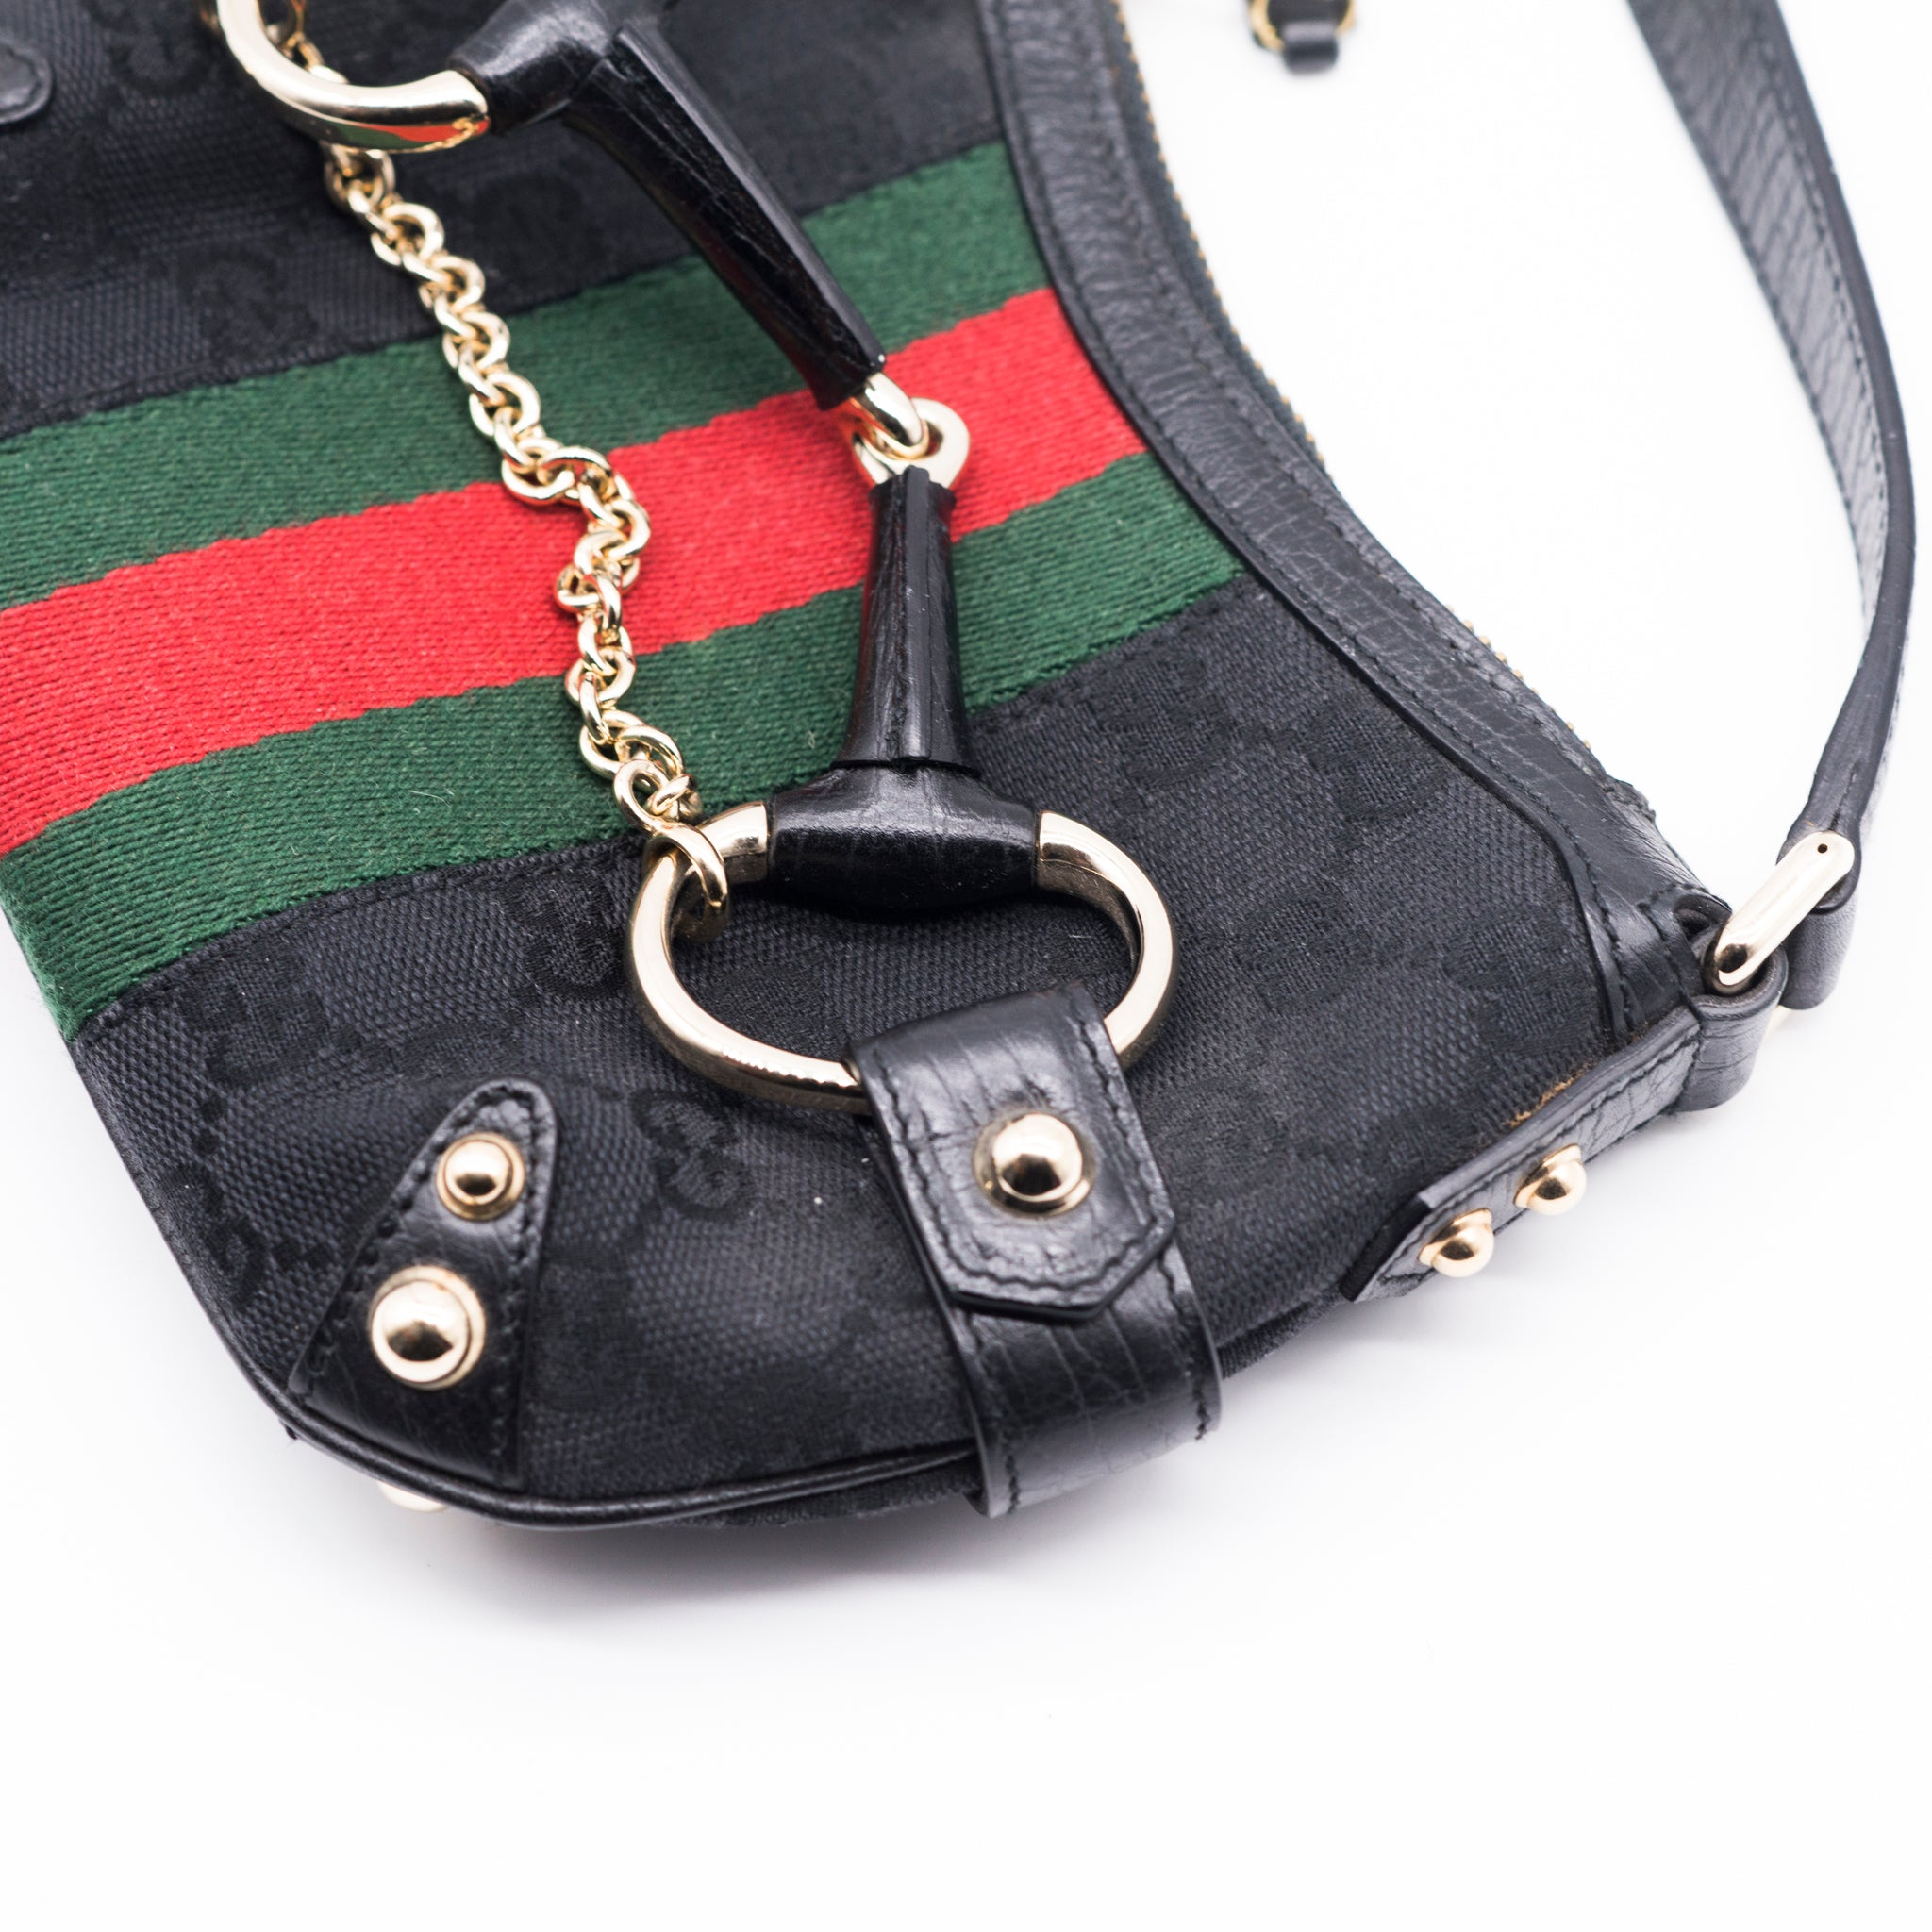 2c33ac8d3c9 GUCCI Monogram GG Canvas Web Gold Horsebit Chain Mini Shoulder Bag Tom Ford  Era